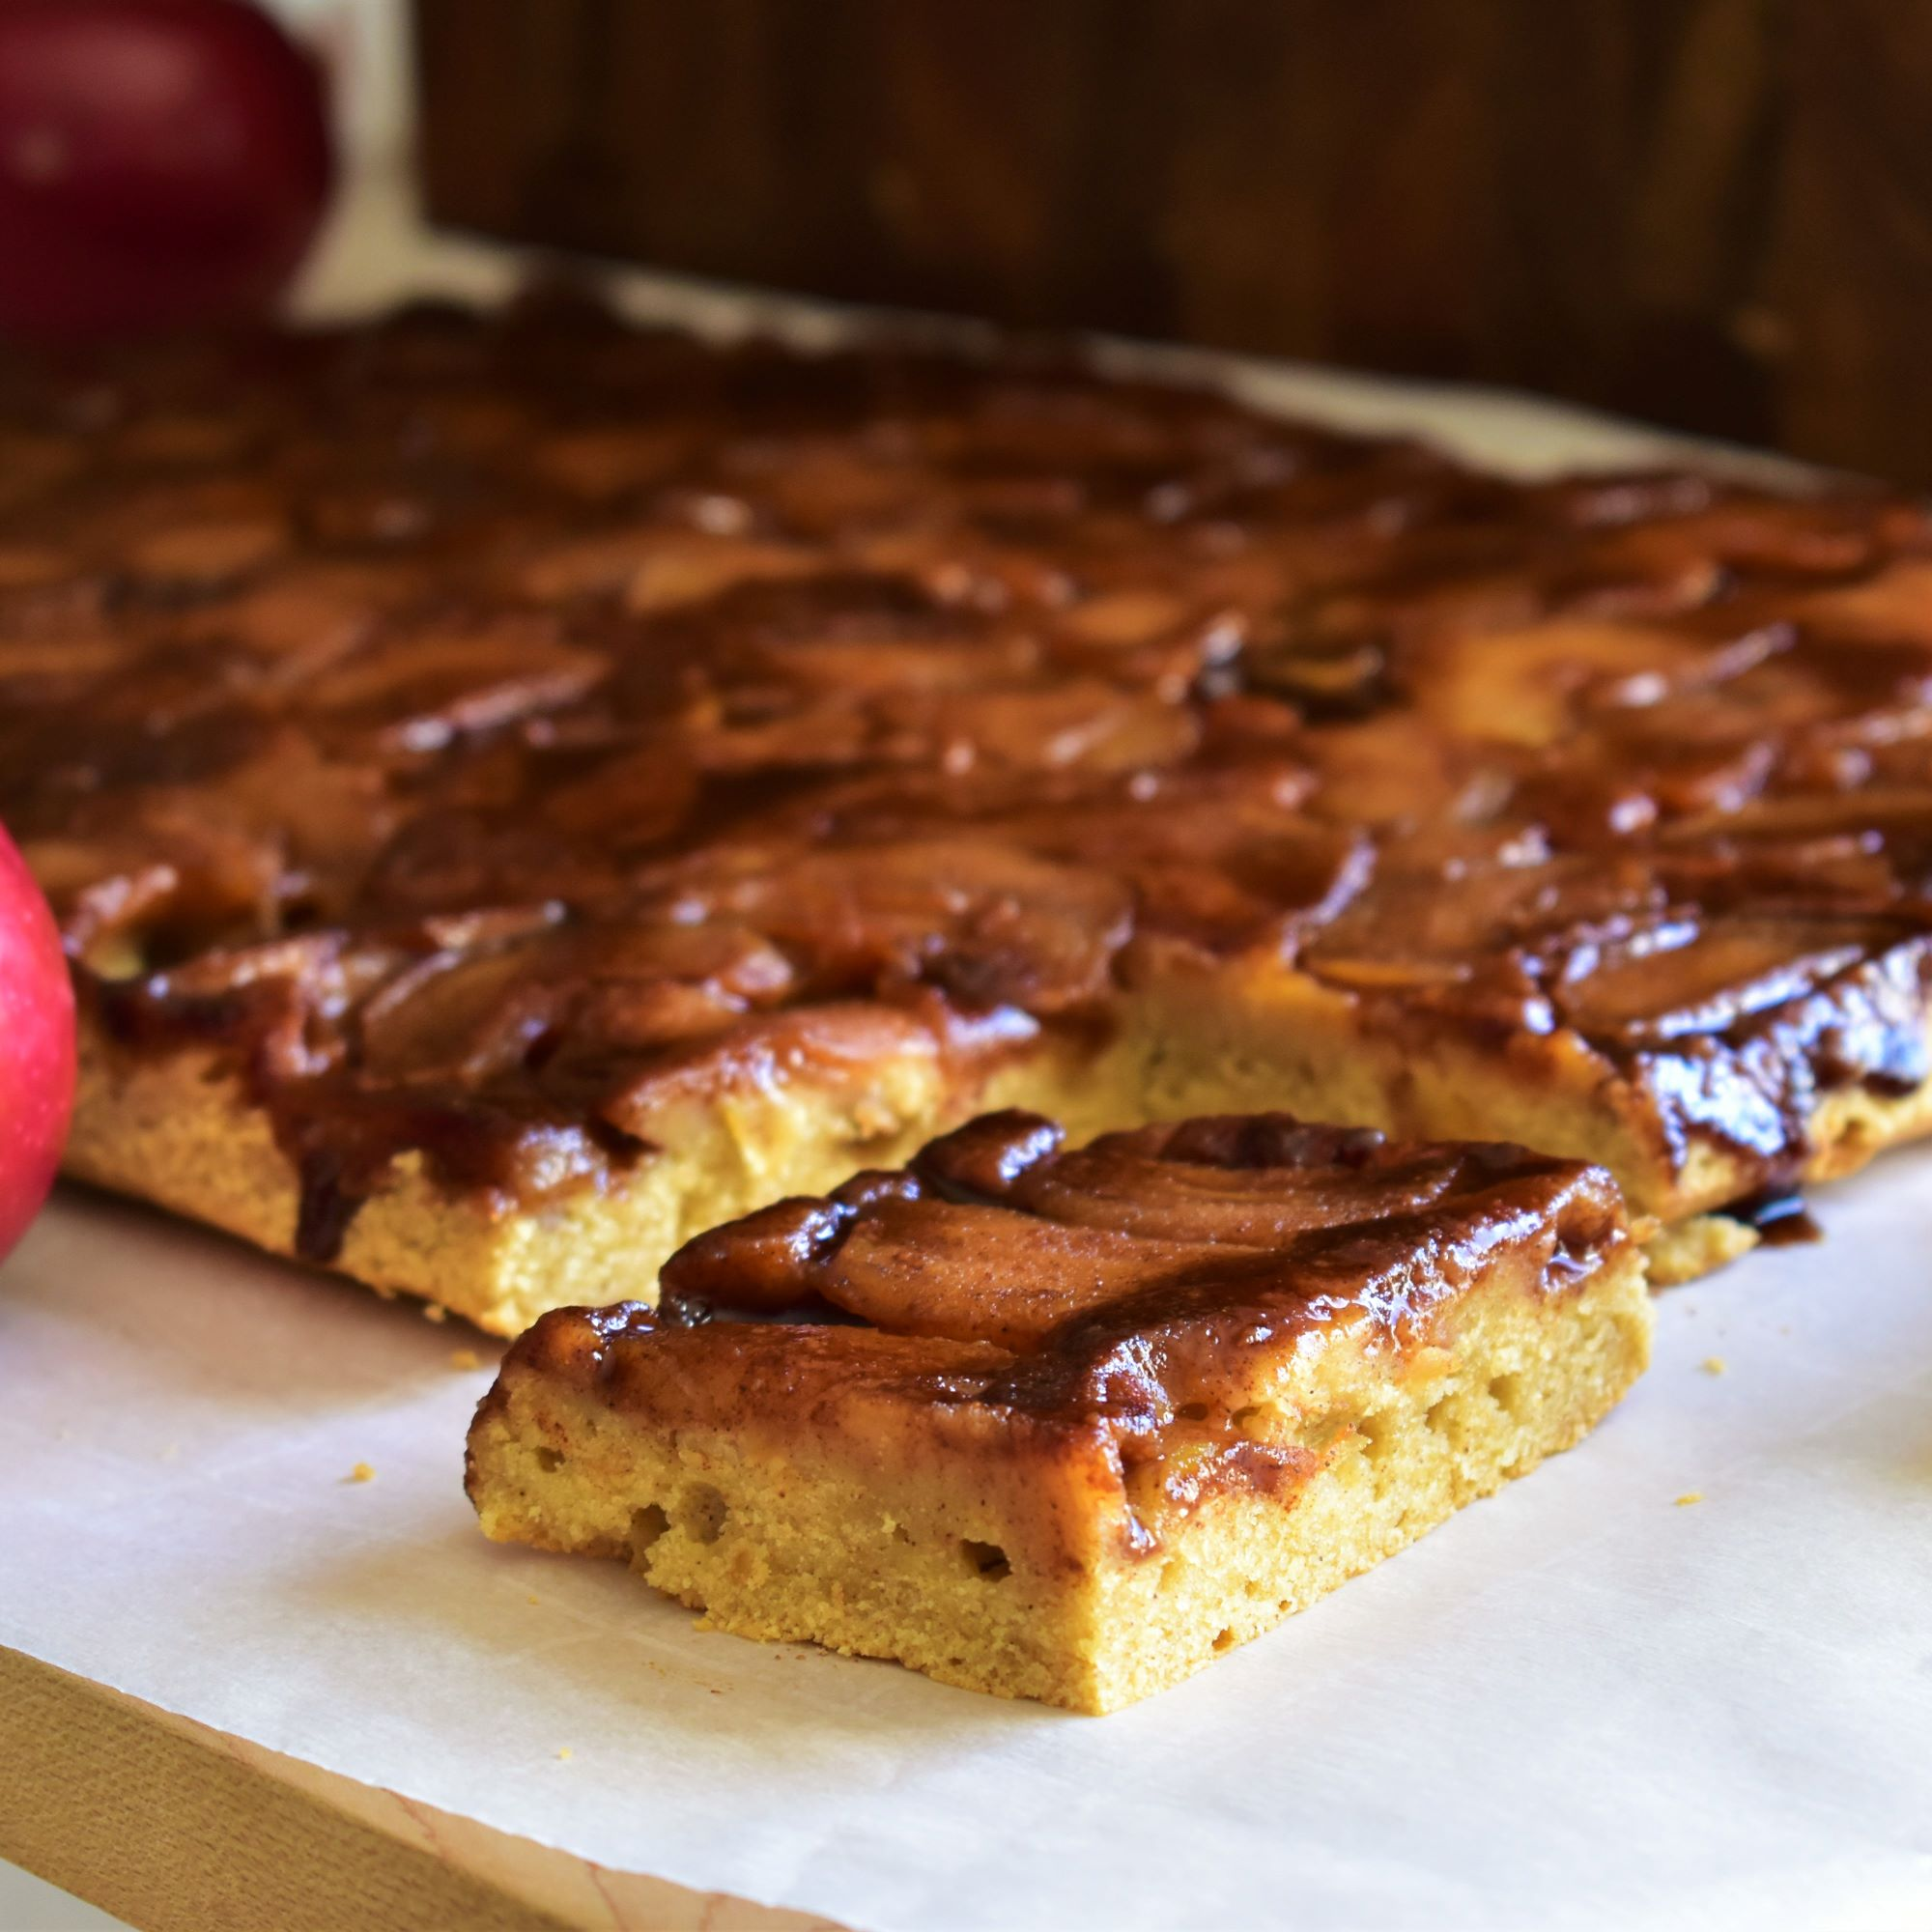 slices of apple cake baked in a sheet pan, with dark brown caramelized apple slices on top